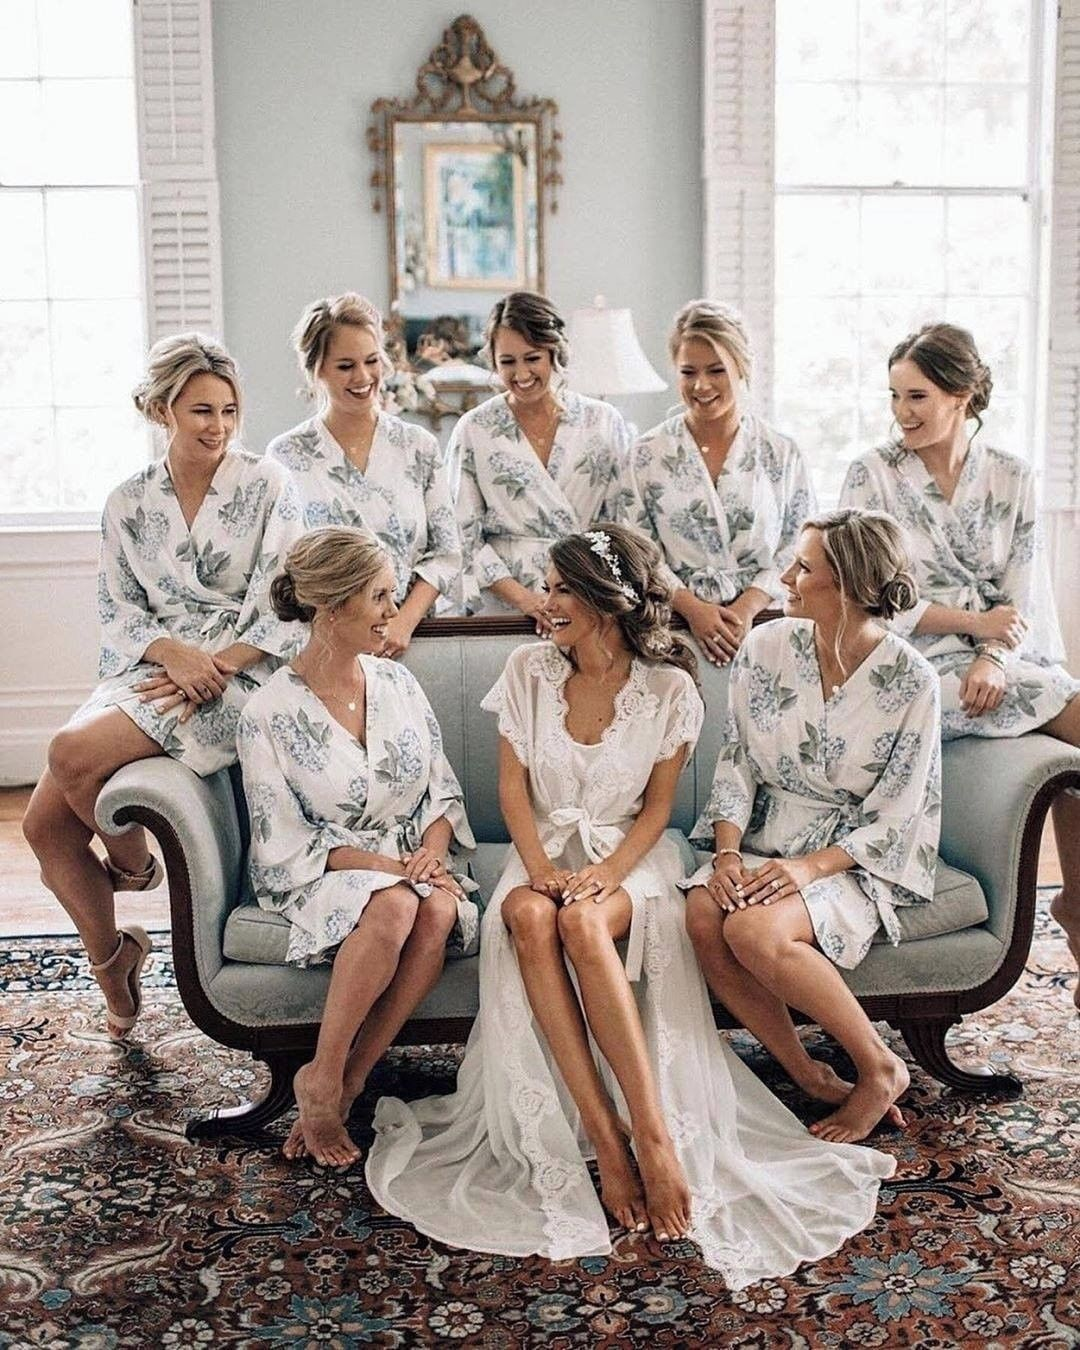 30 wedding photography of bridesmaids ideas you will never forget